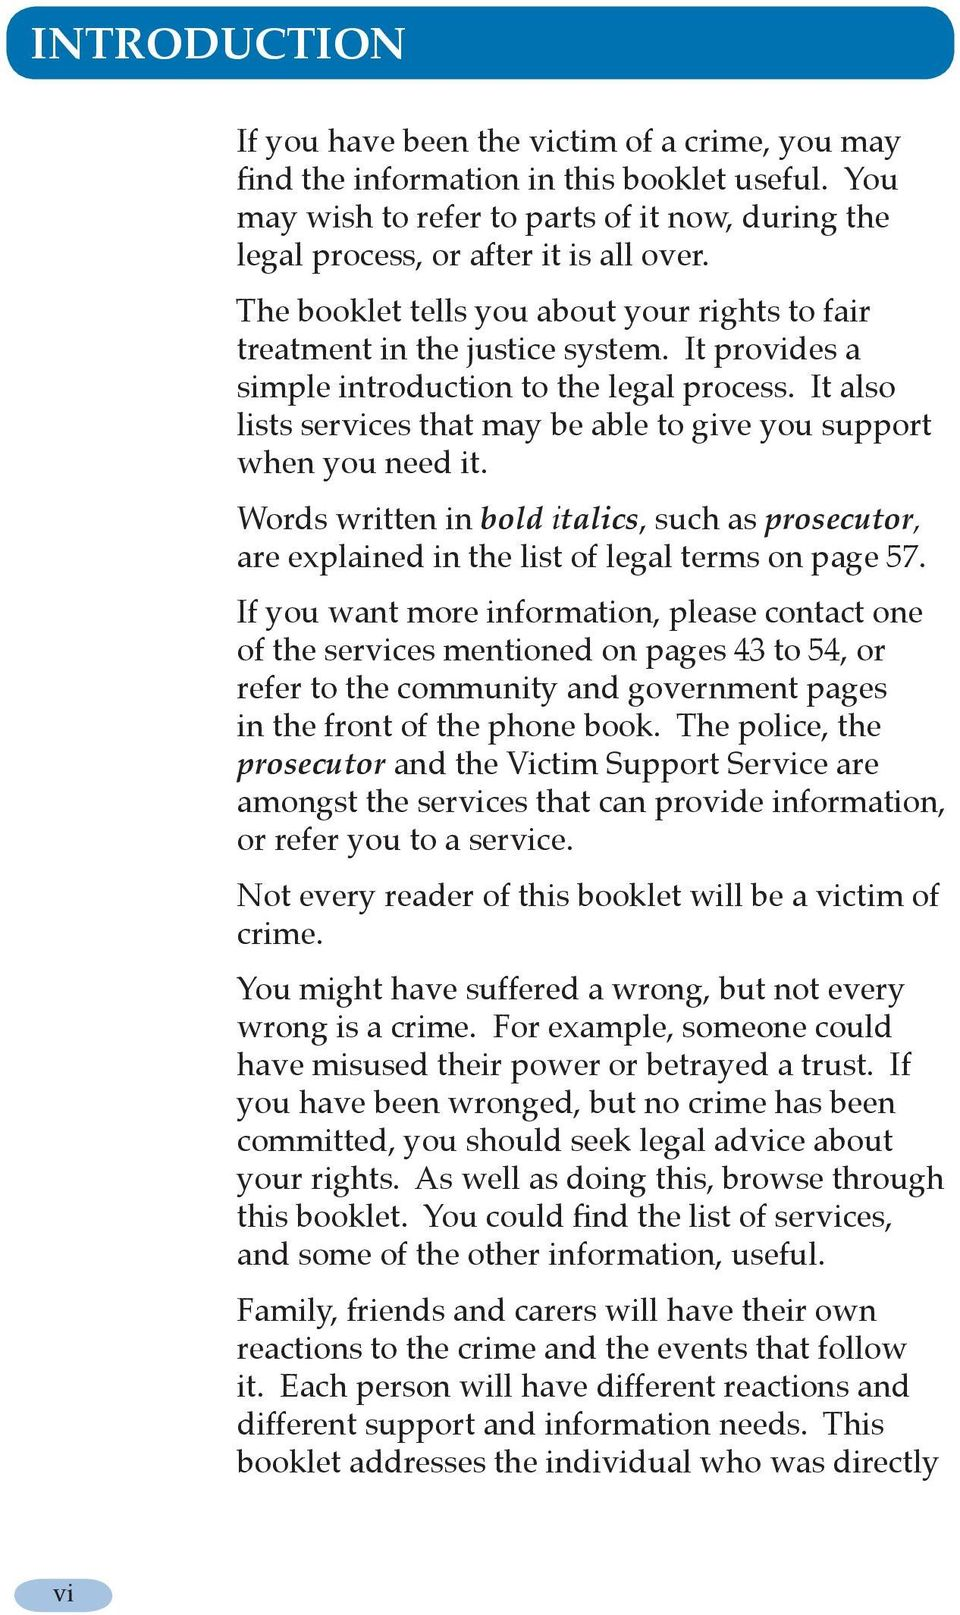 It also lists services that may be able to give you support when you need it. Words written in bold italics, such as prosecutor, are explained in the list of legal terms on page 57.